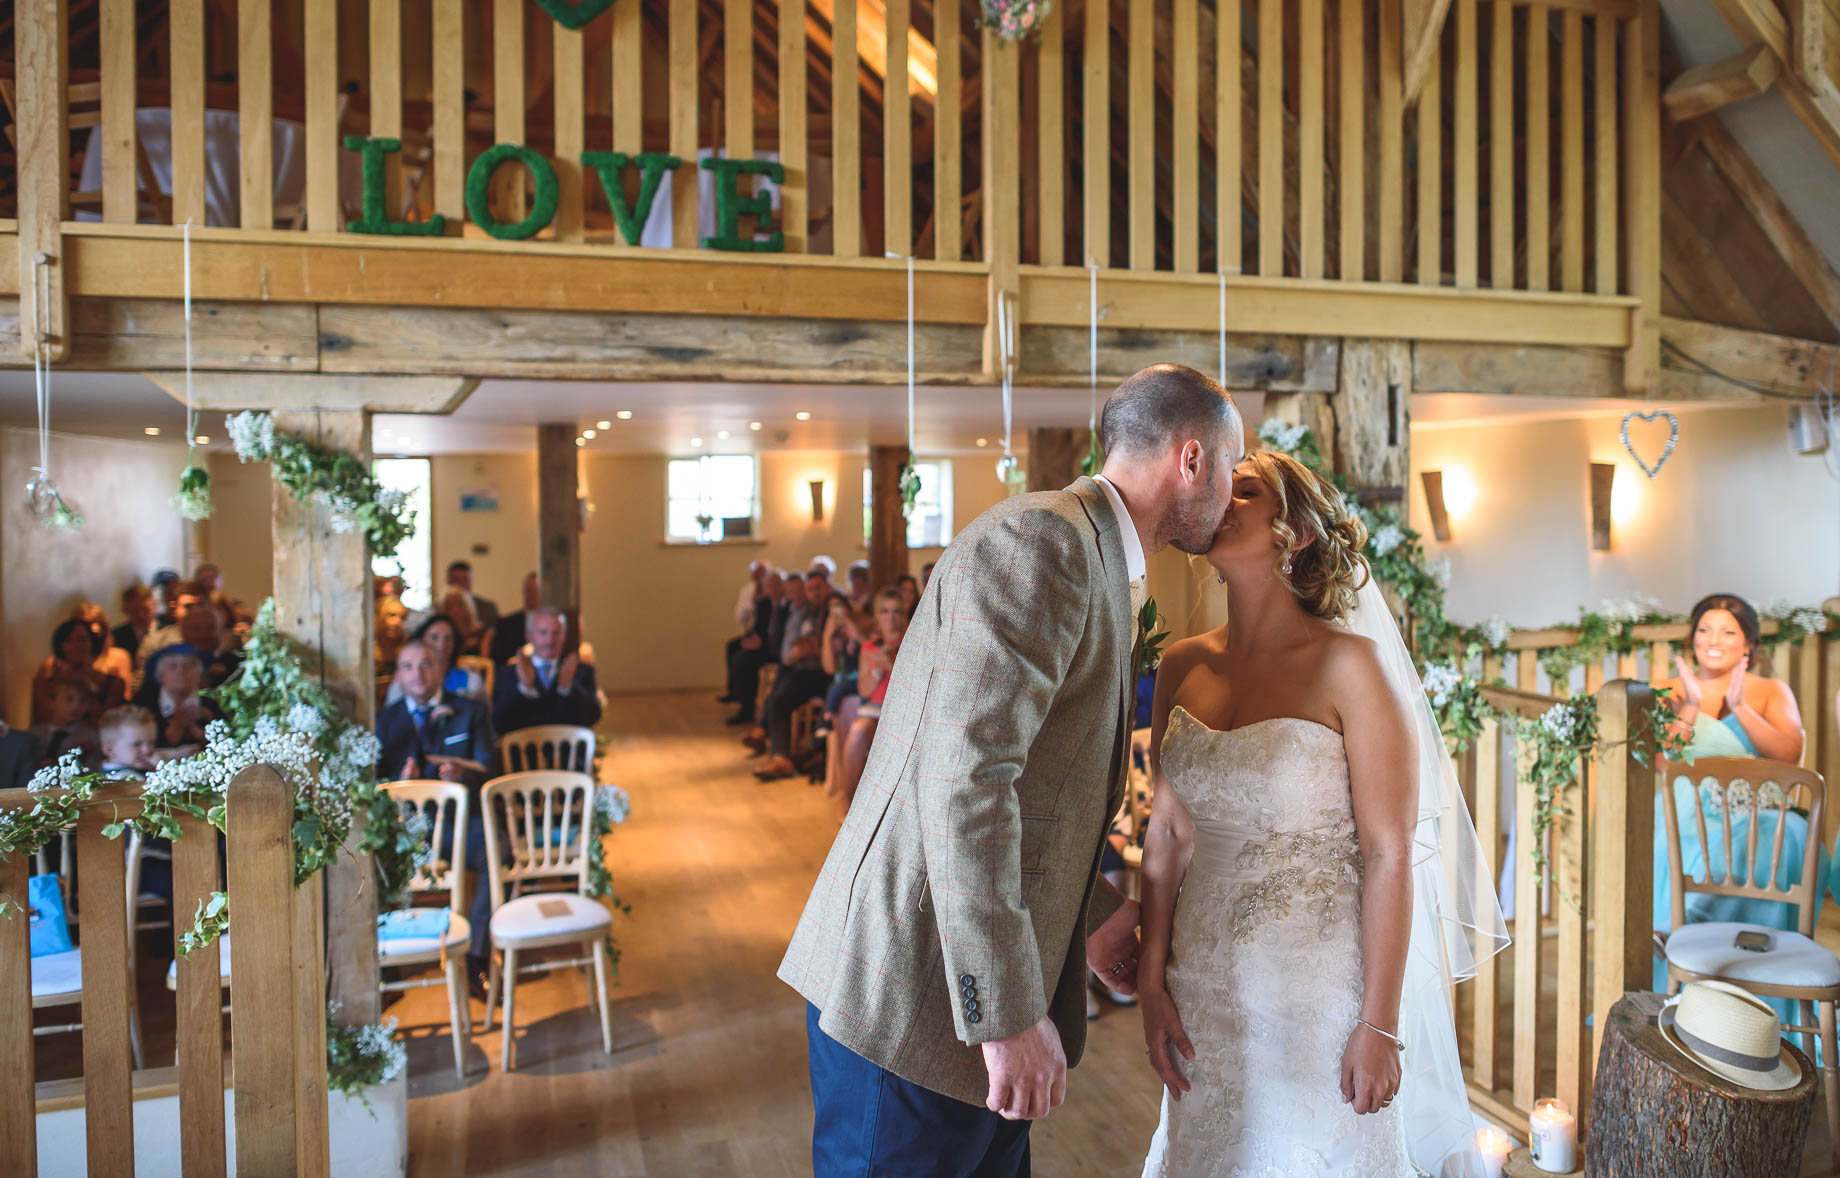 Bury Court Barn wedding photography - Guy Collier - Kate and Russ (74 of 187)